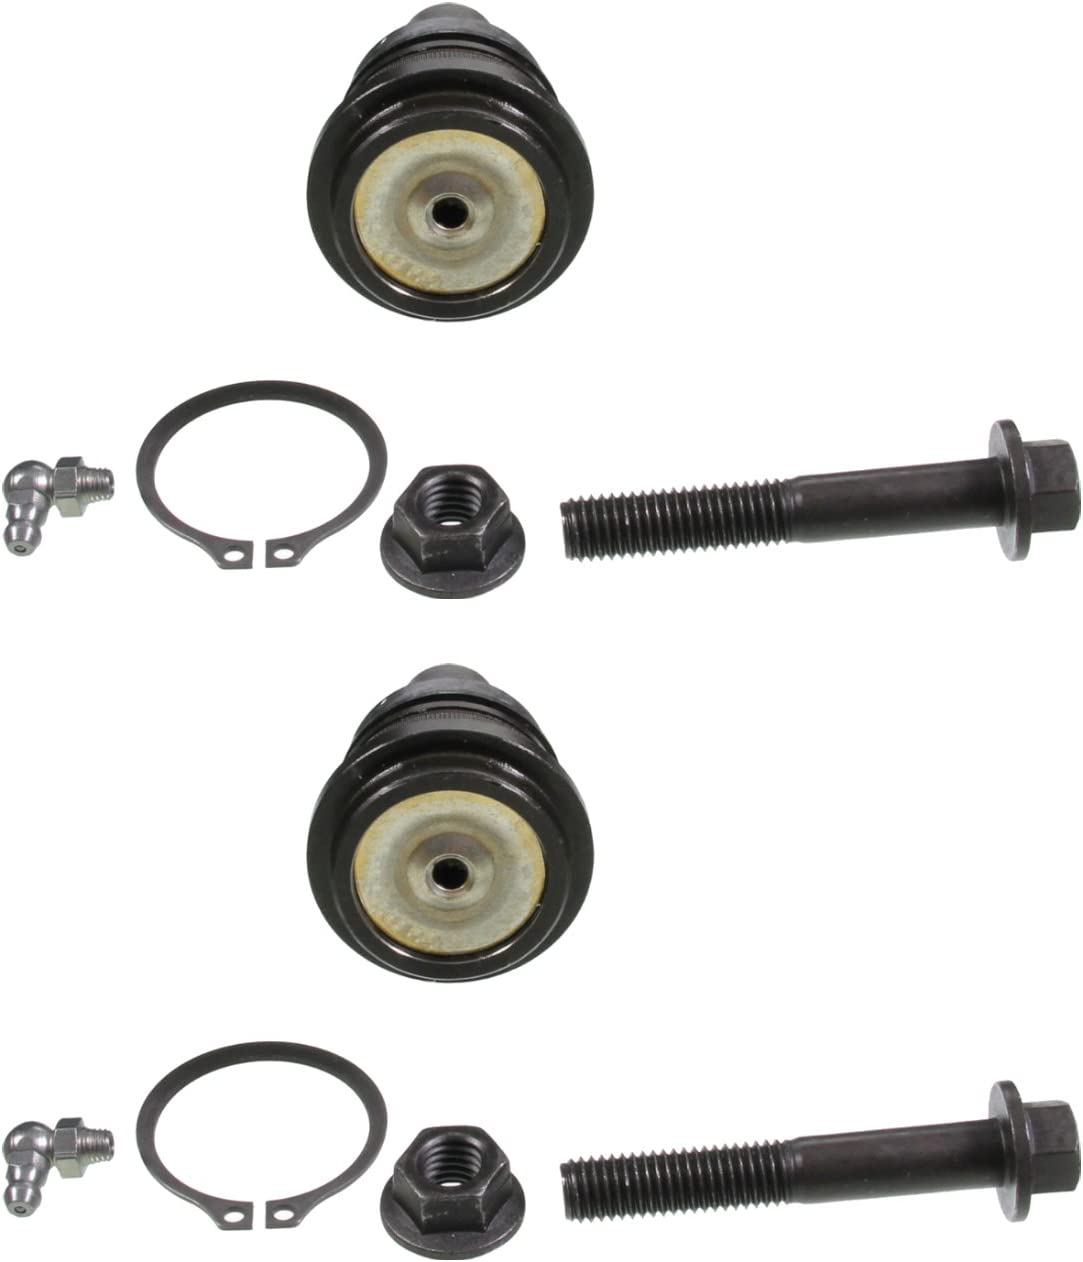 Set of 2 Front Lower Suspension Ball Joint fits 2007 Hyundai Accent